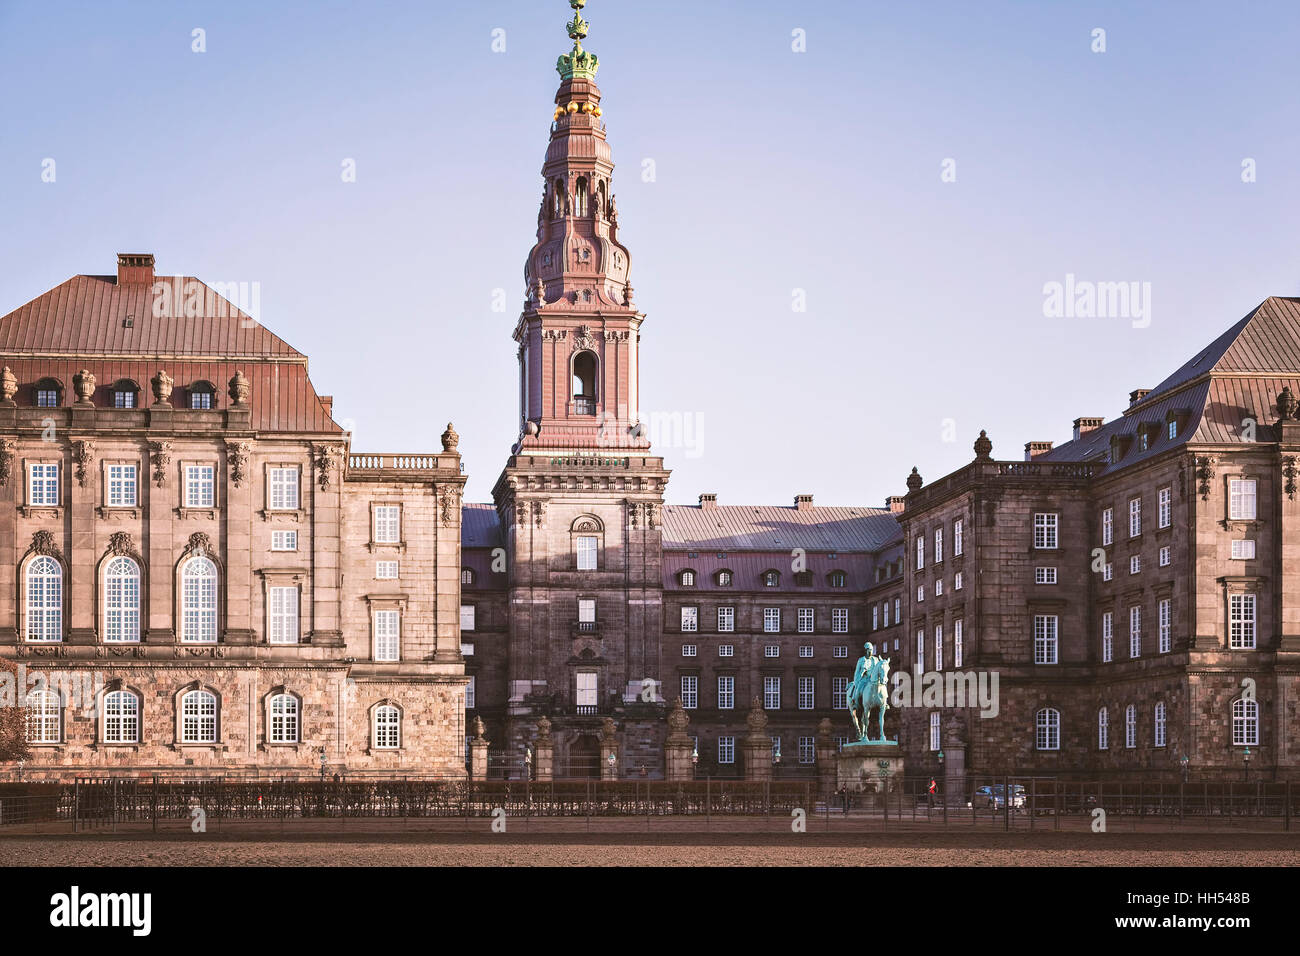 Image of the palace and parliament building of Christiansborg. Copenhagen, Denmark. - Stock Image